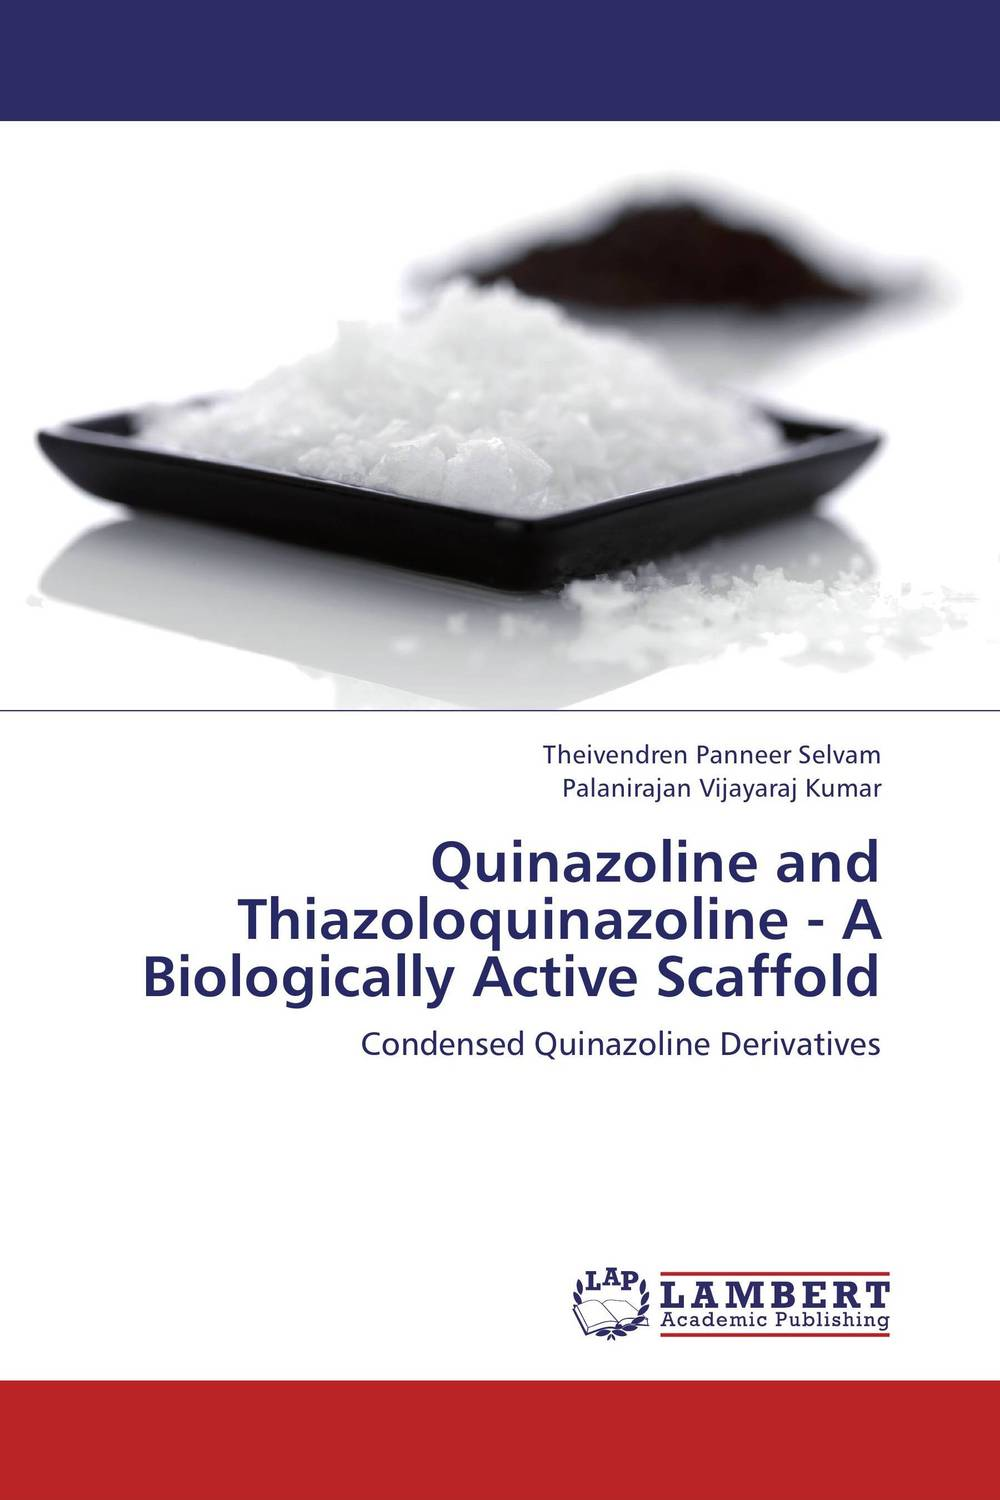 Quinazoline and Thiazoloquinazoline  - A Biologically Active Scaffold theivendren panneer selvam s n mamledesai and fadte pooja rajaram alias fotto importance of quinazoline against cancer